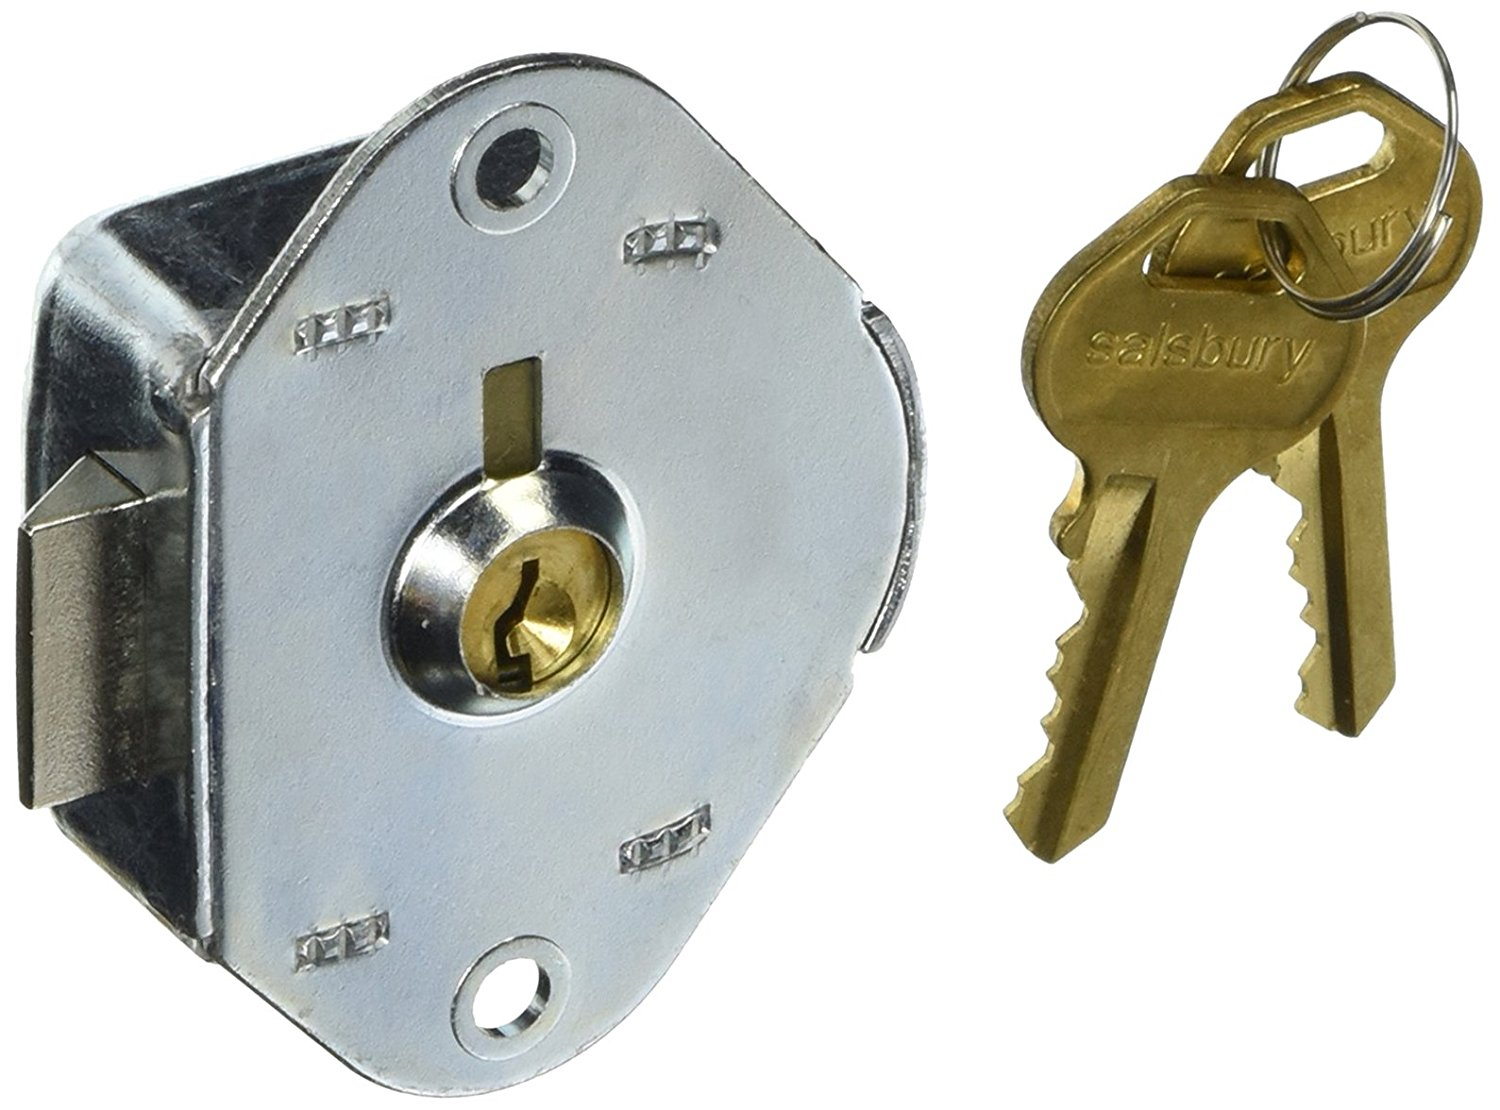 Salsbury Industries 8115 Built In Replacement Lock for Heavy Duty Storage Cabinet Door with 2 Keys